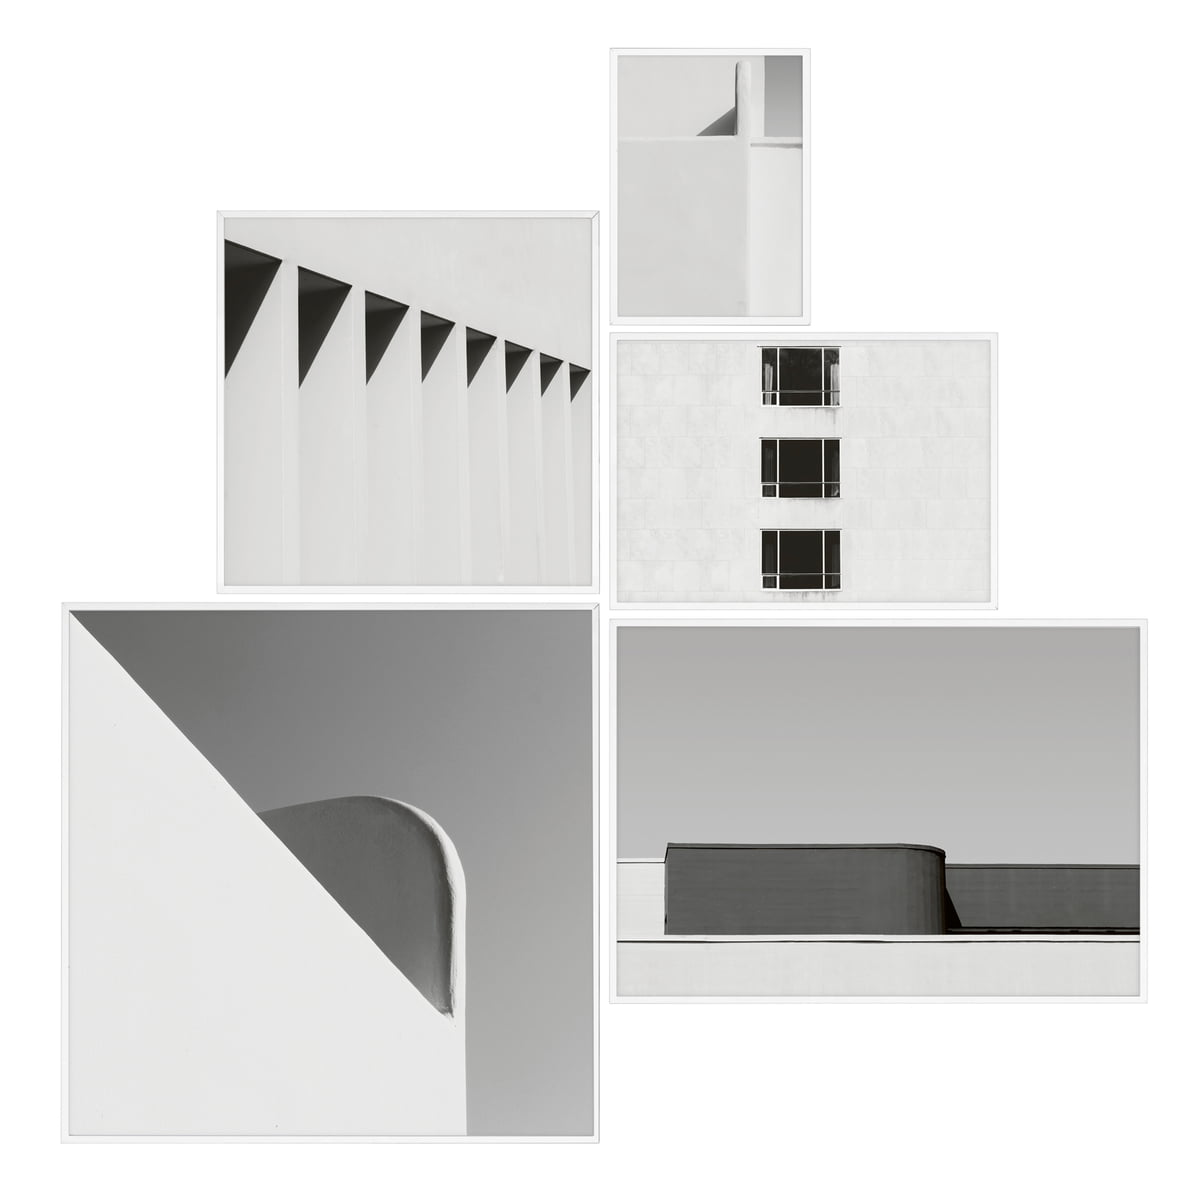 Architectural photographs from lassen by connox for Connox com